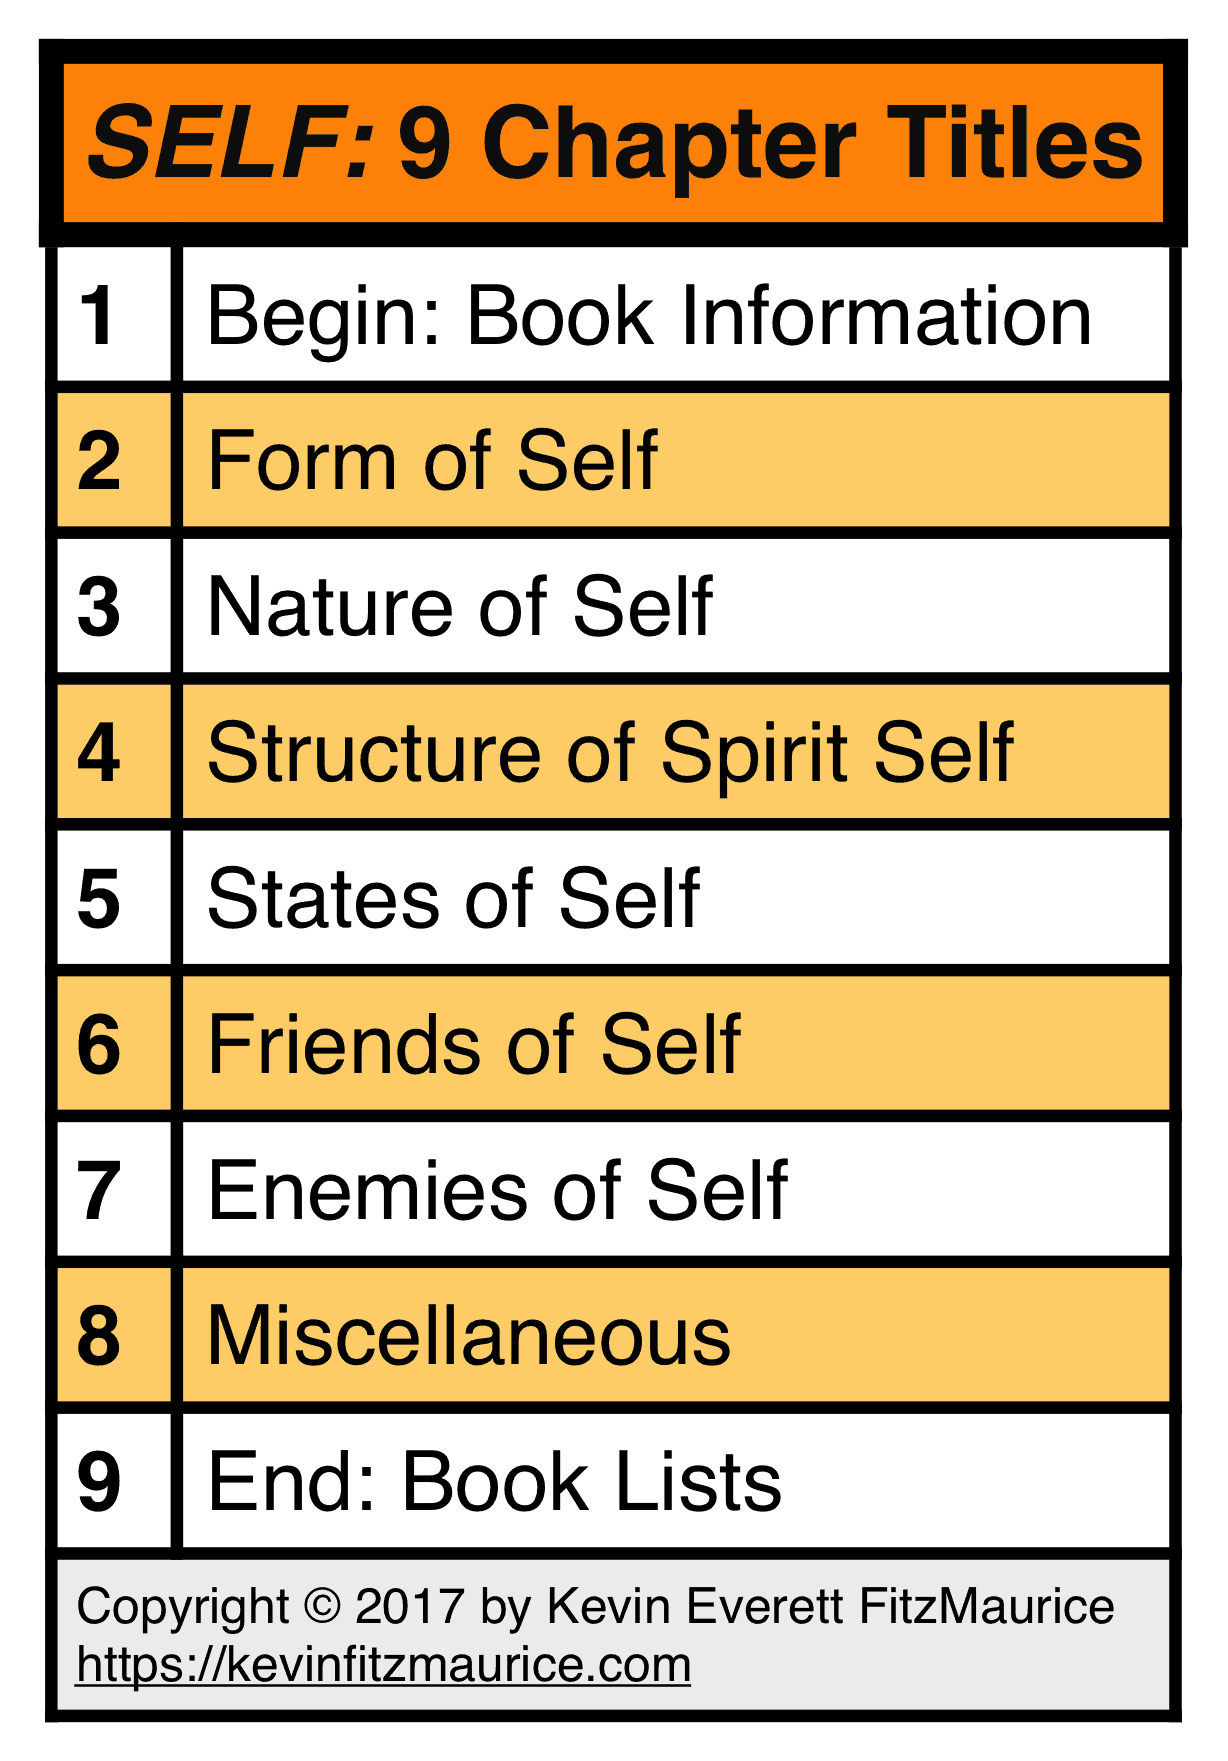 Self: Who Am I? 9 Chapter Titles